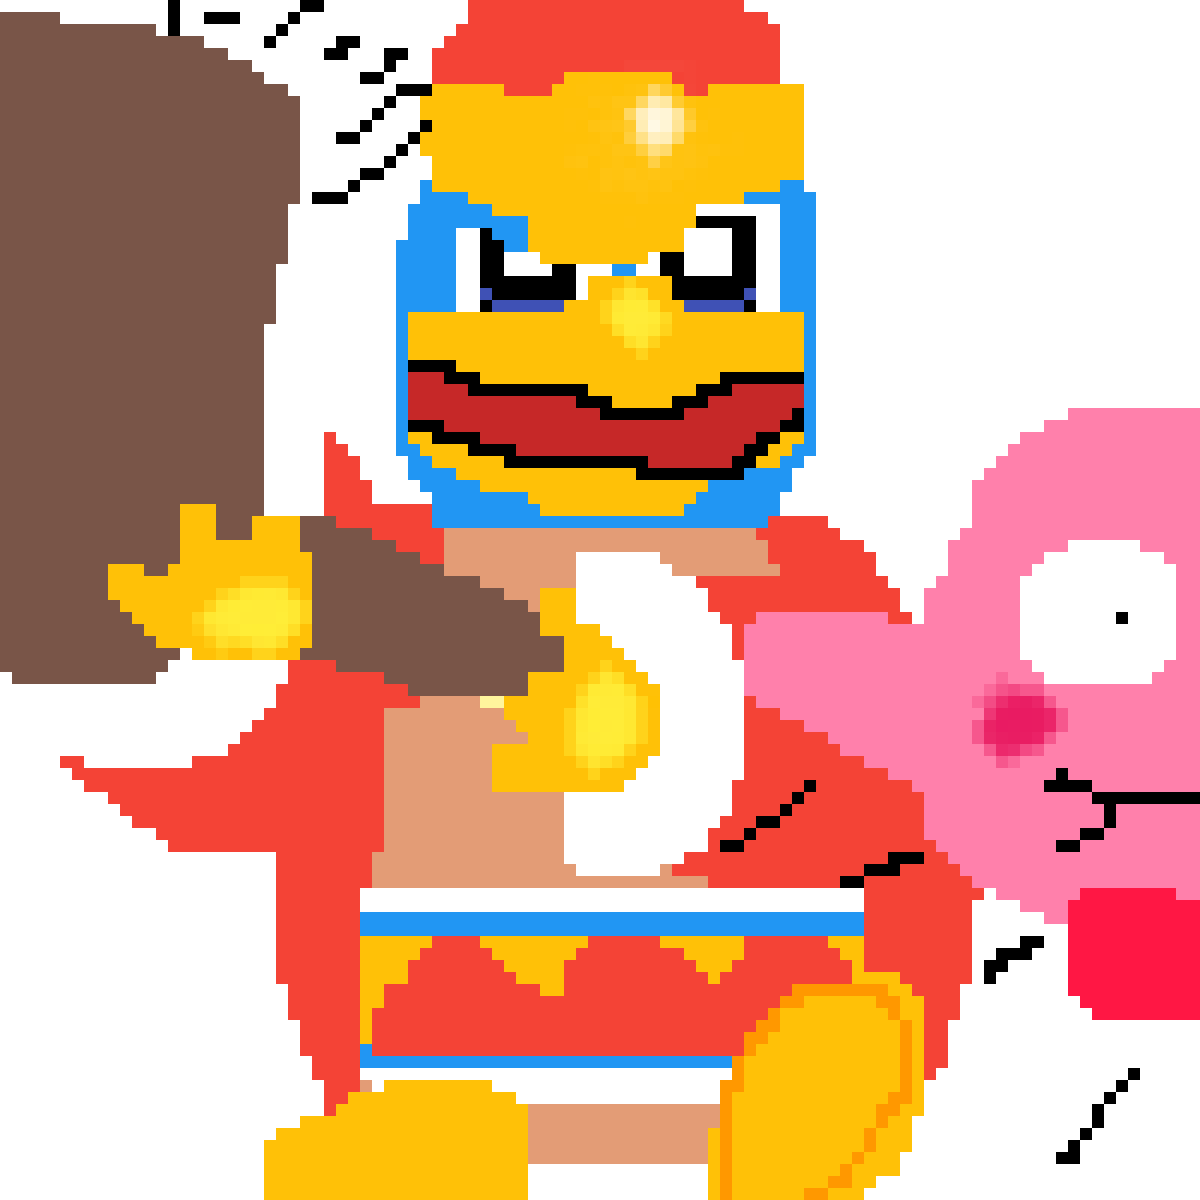 Time to clobber that there kirby!